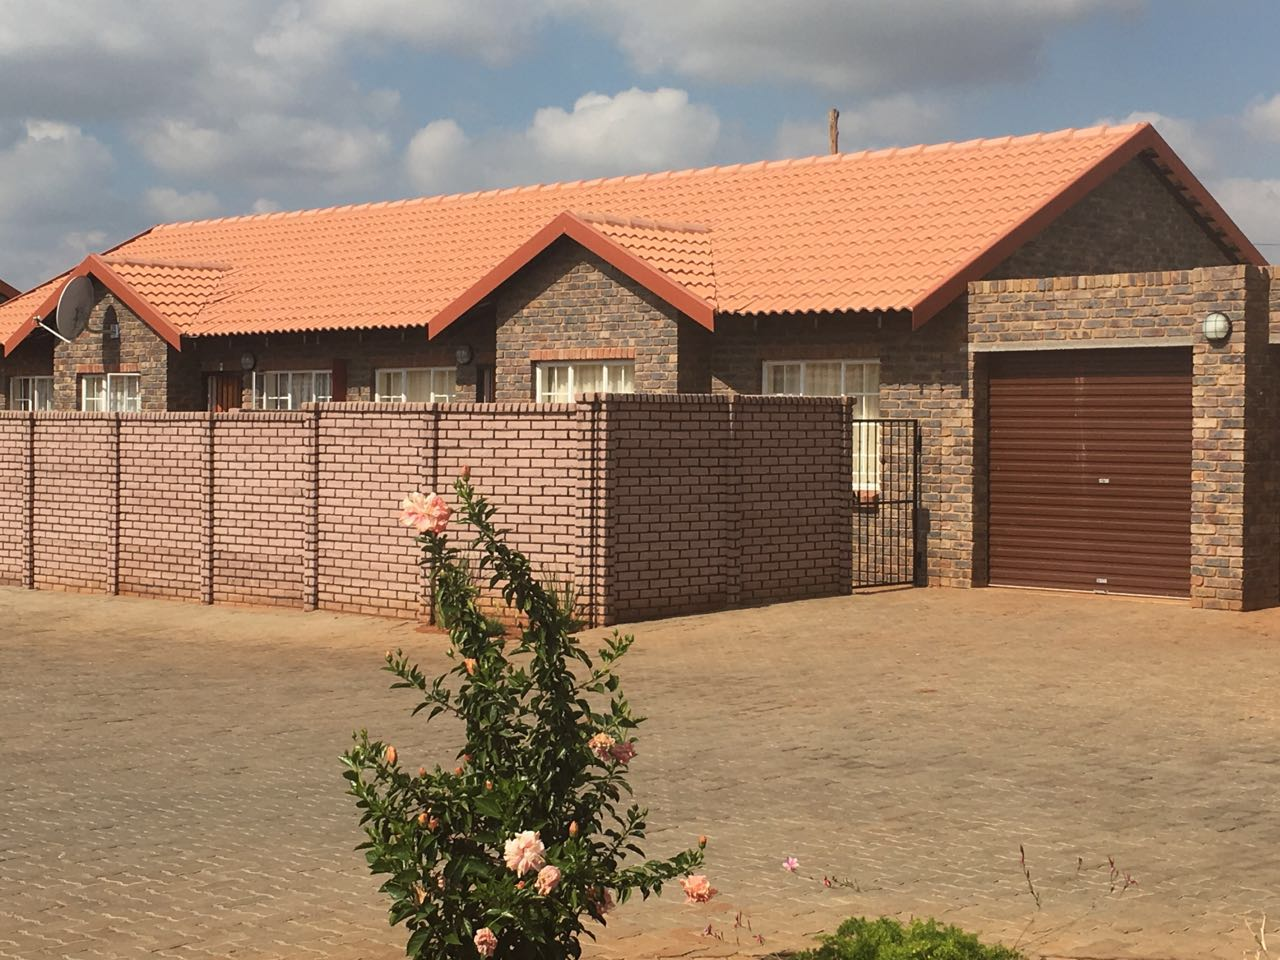 3 Bedroom House with ample Space for Bulky Furniture in Secure Estate